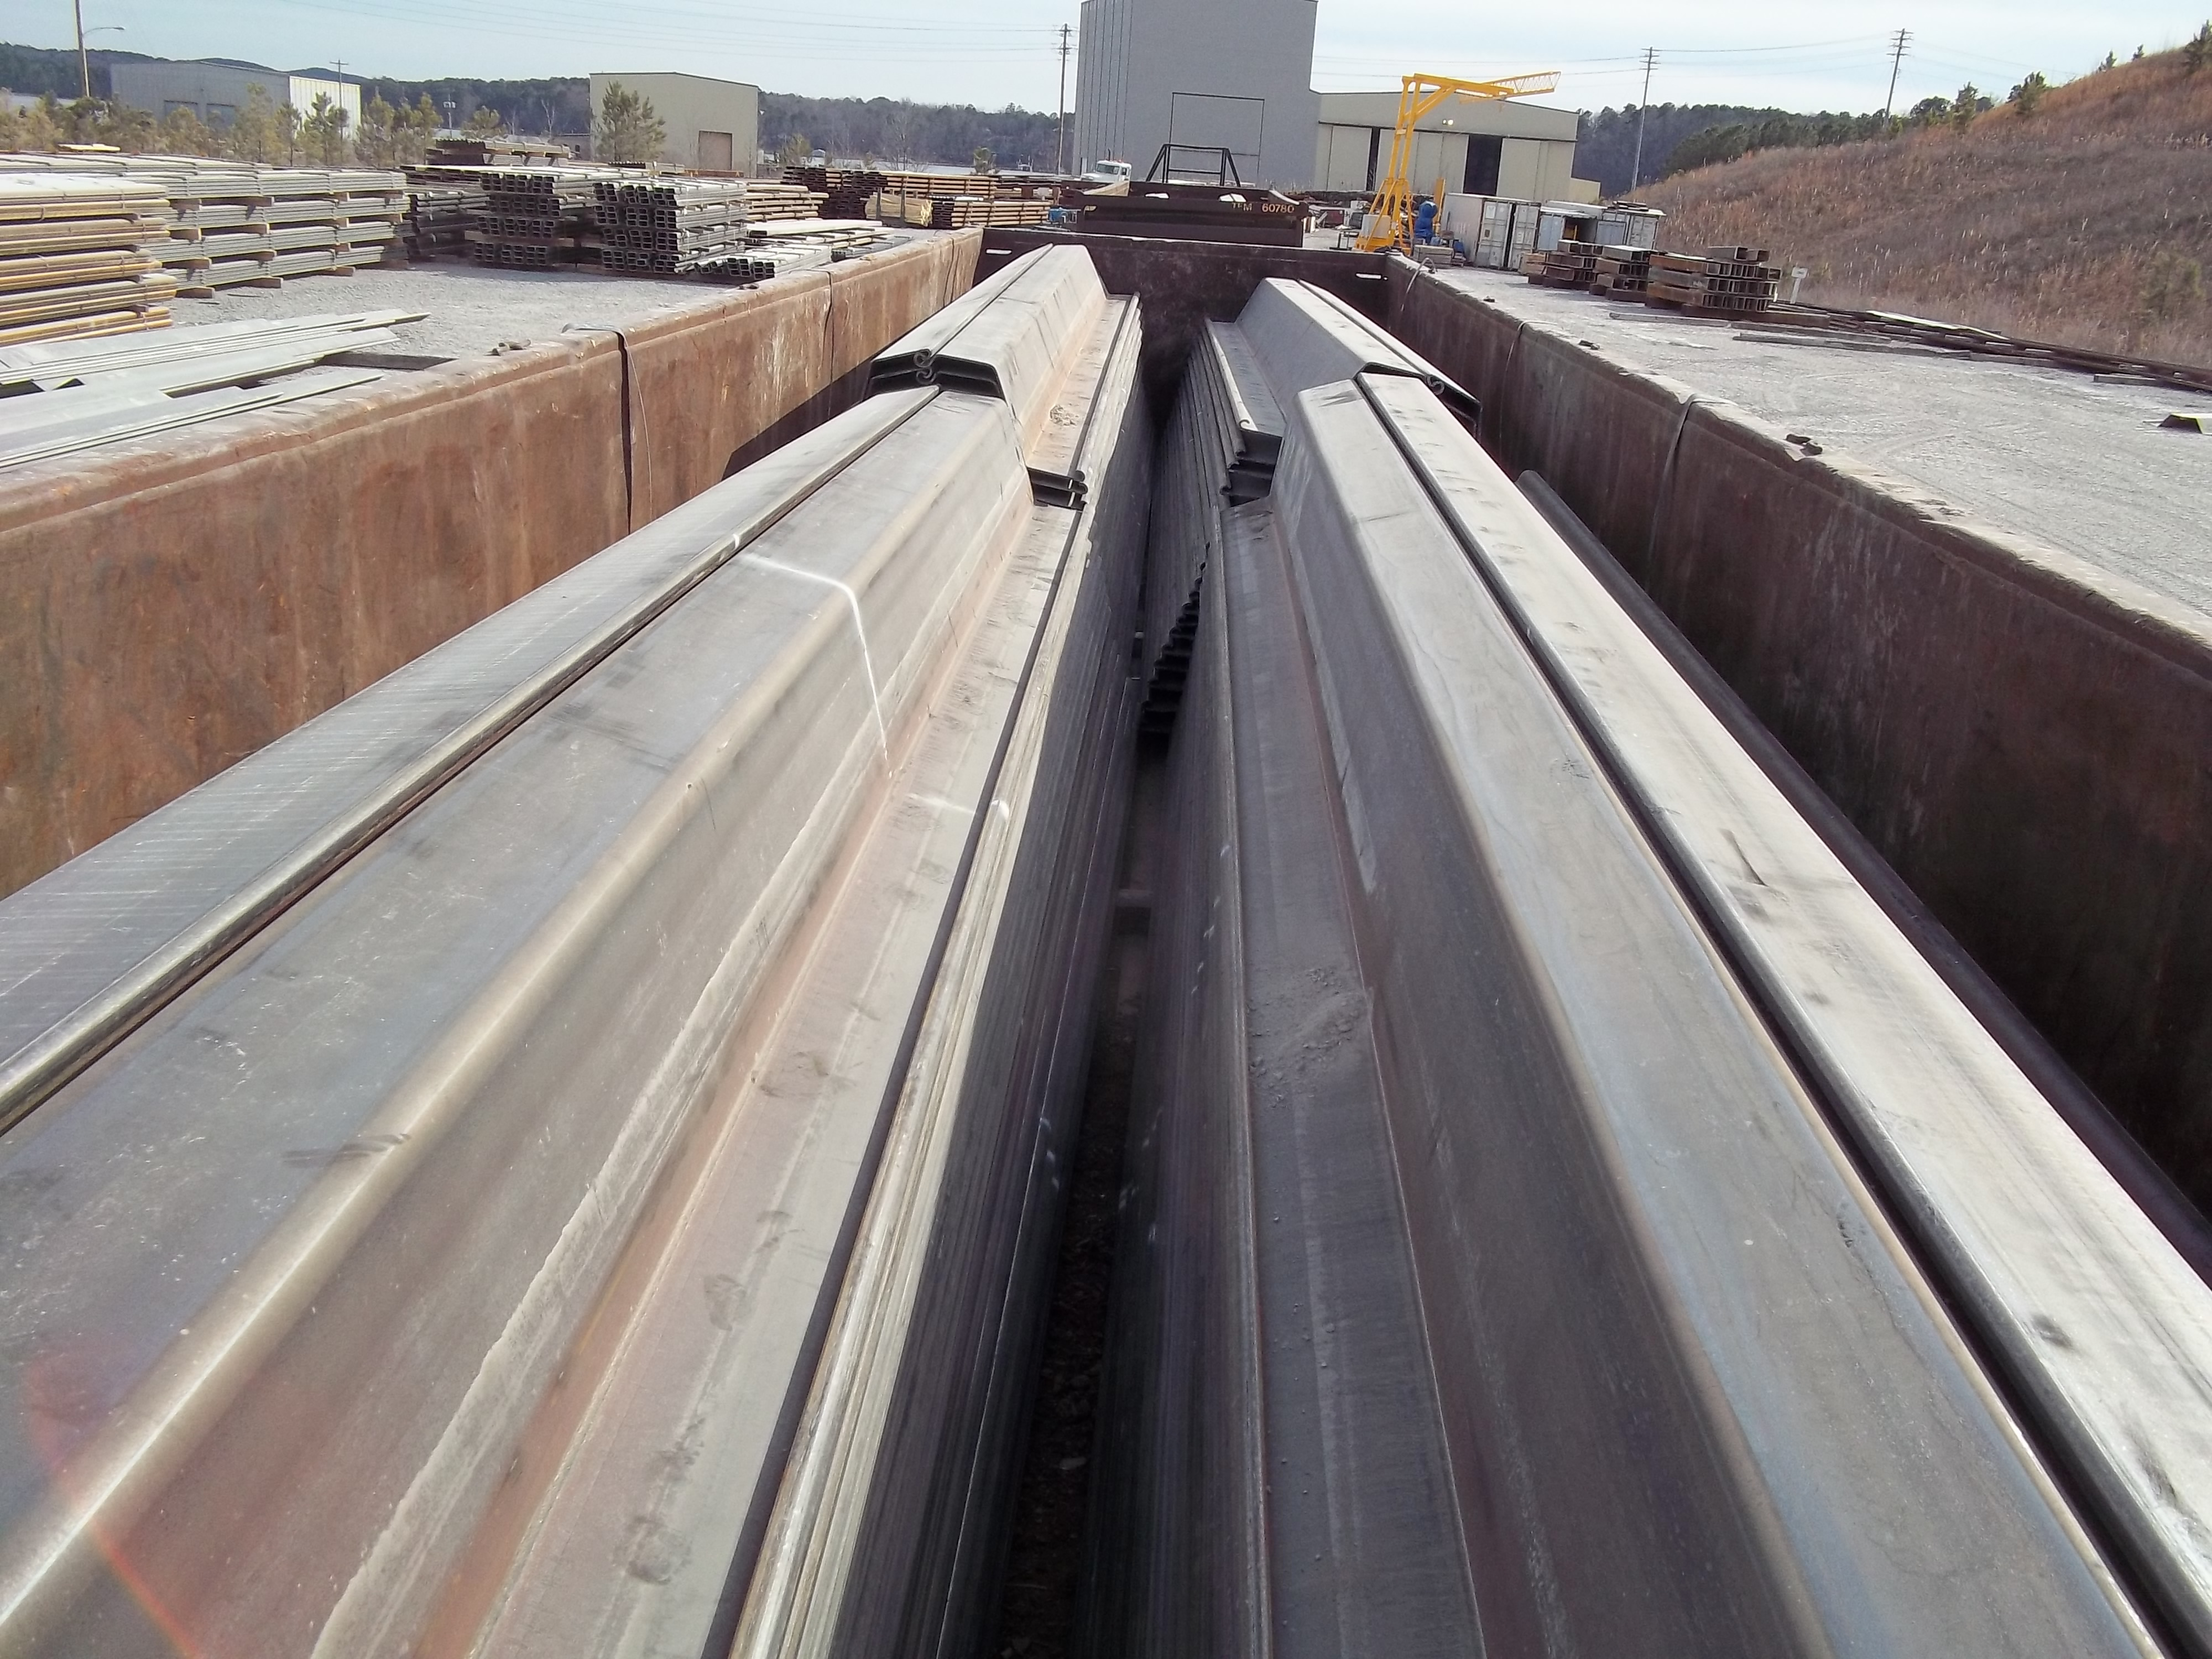 JZ120 sheet pile, loaded in a railcar, heading to the job site